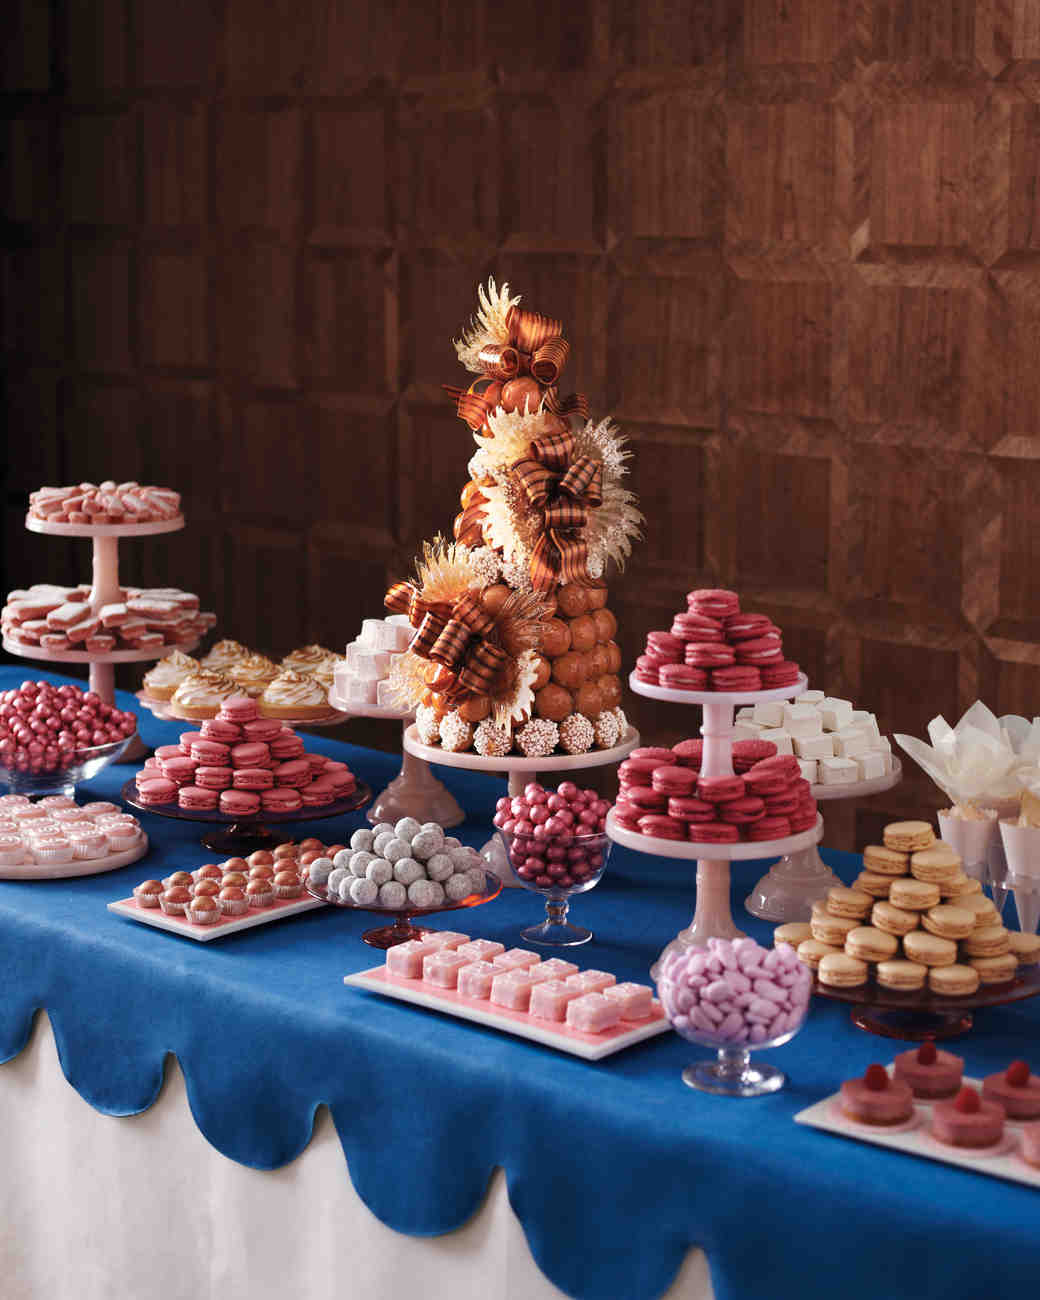 Red Dessert Table For Weddings: 39 Amazing Dessert Tables